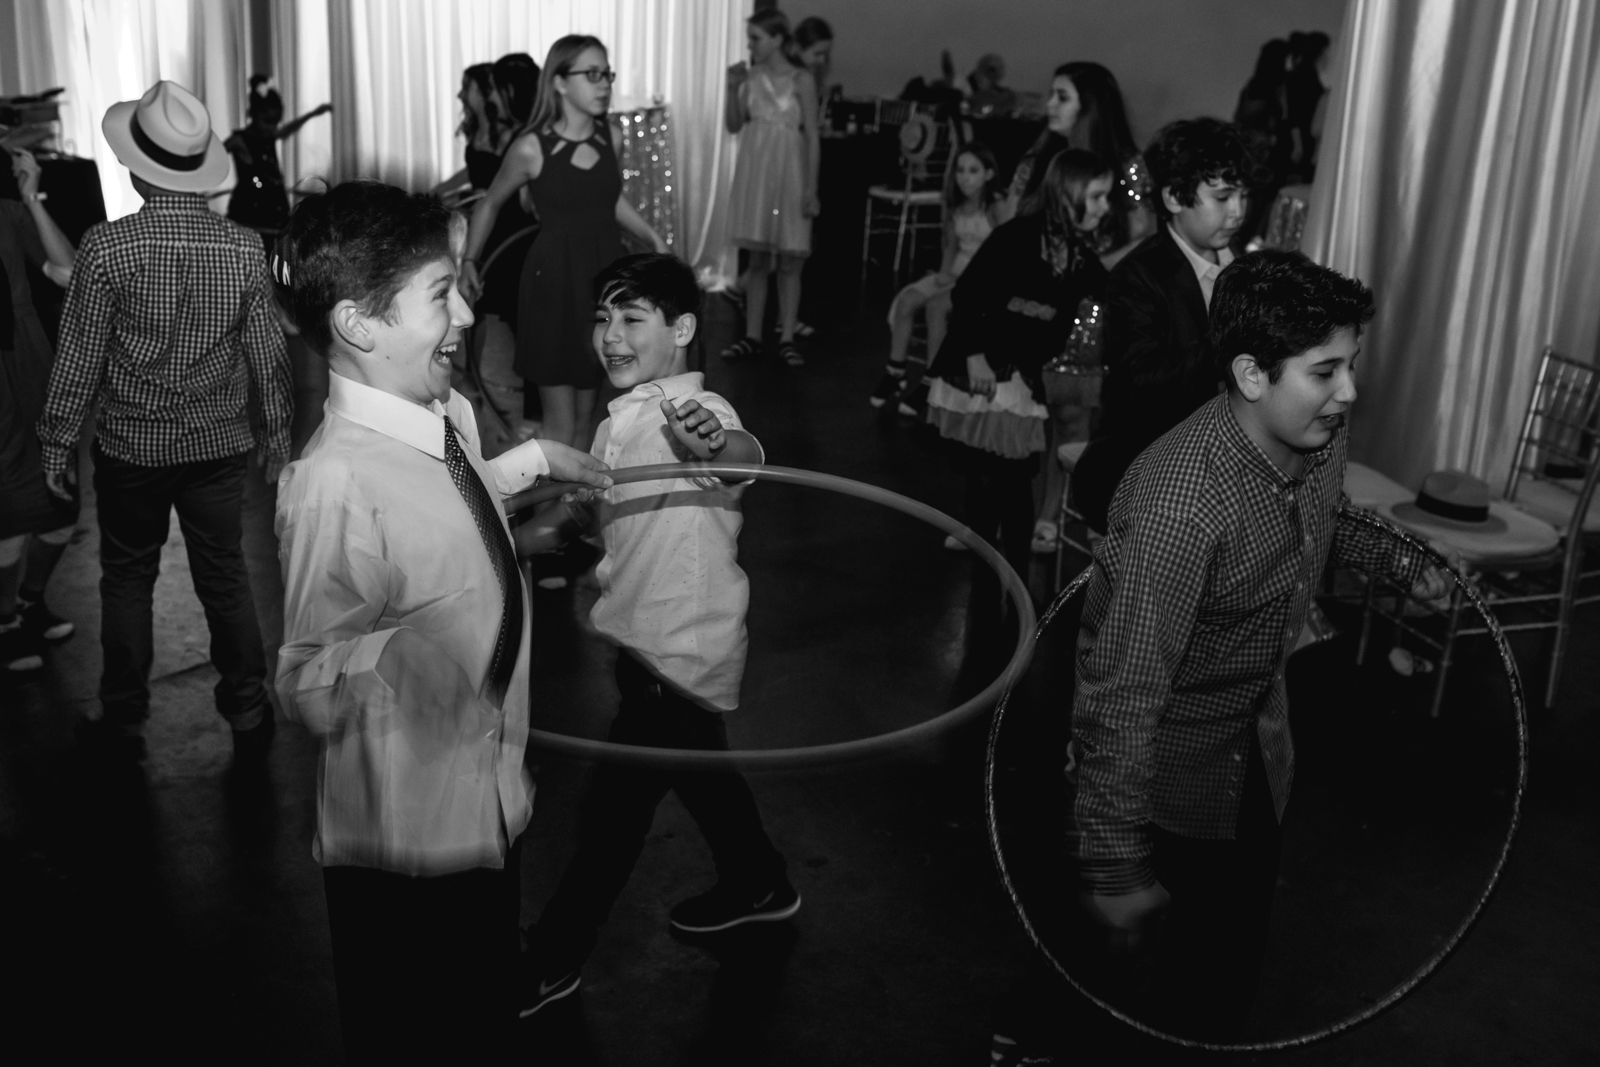 boys hula hoop during a bat mitzvah